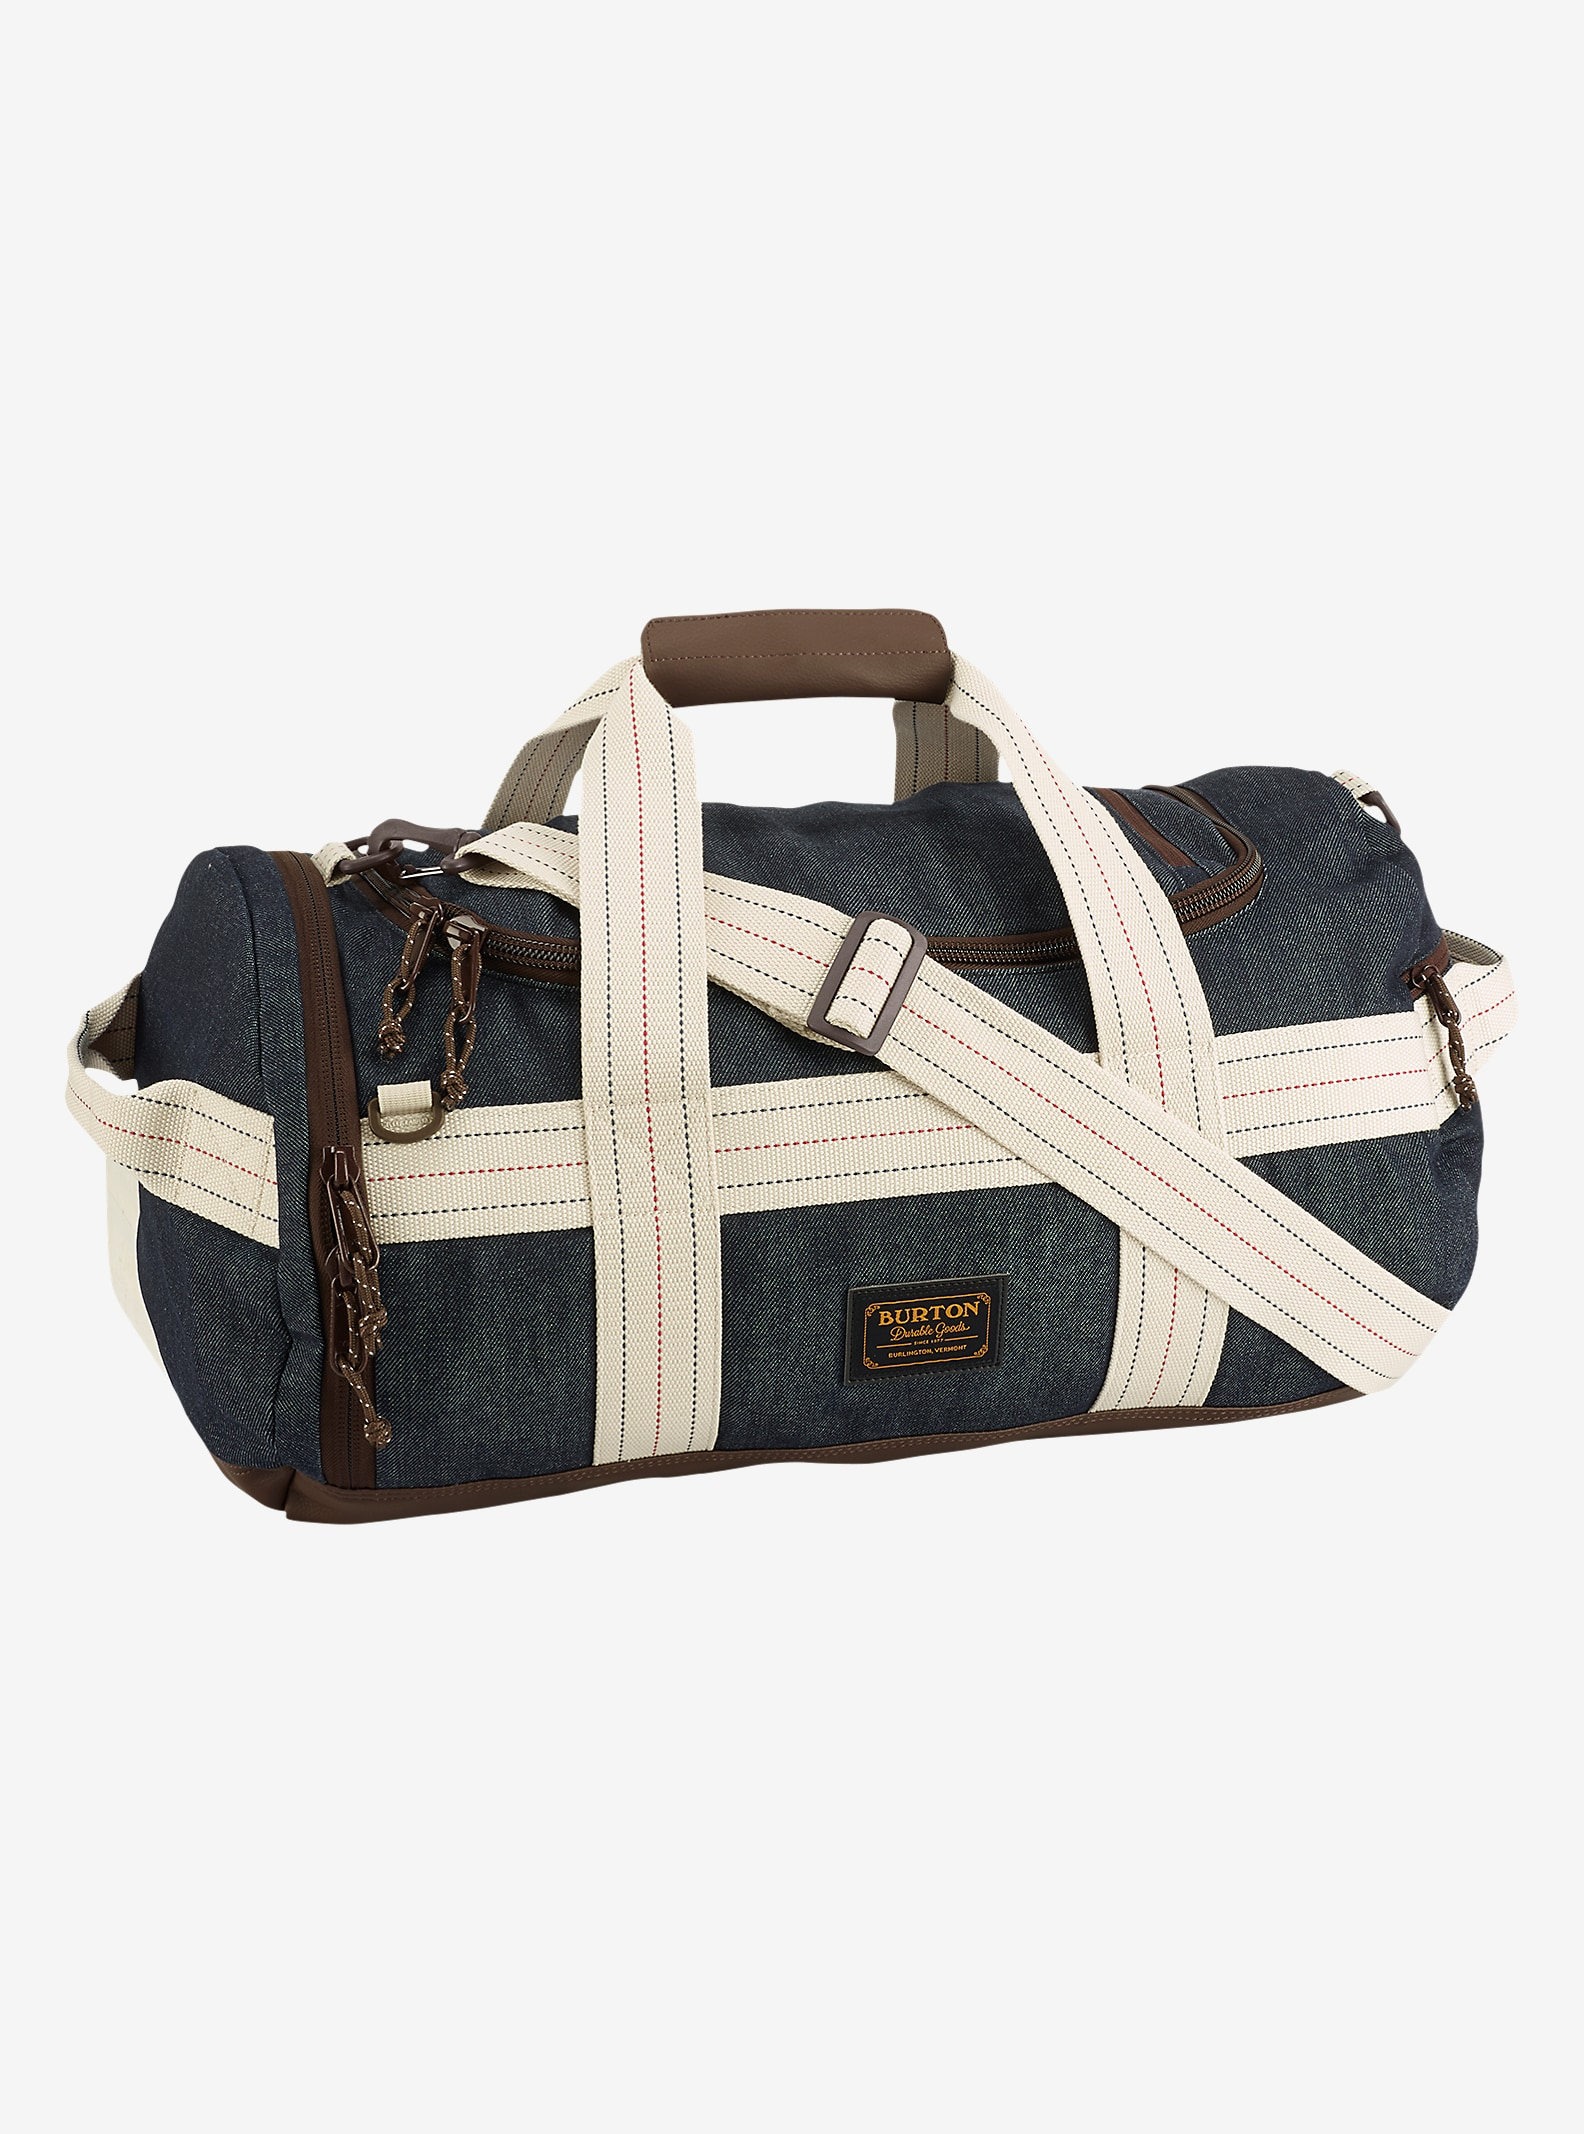 Burton Backhill Duffel Bag Small 40L shown in Denim